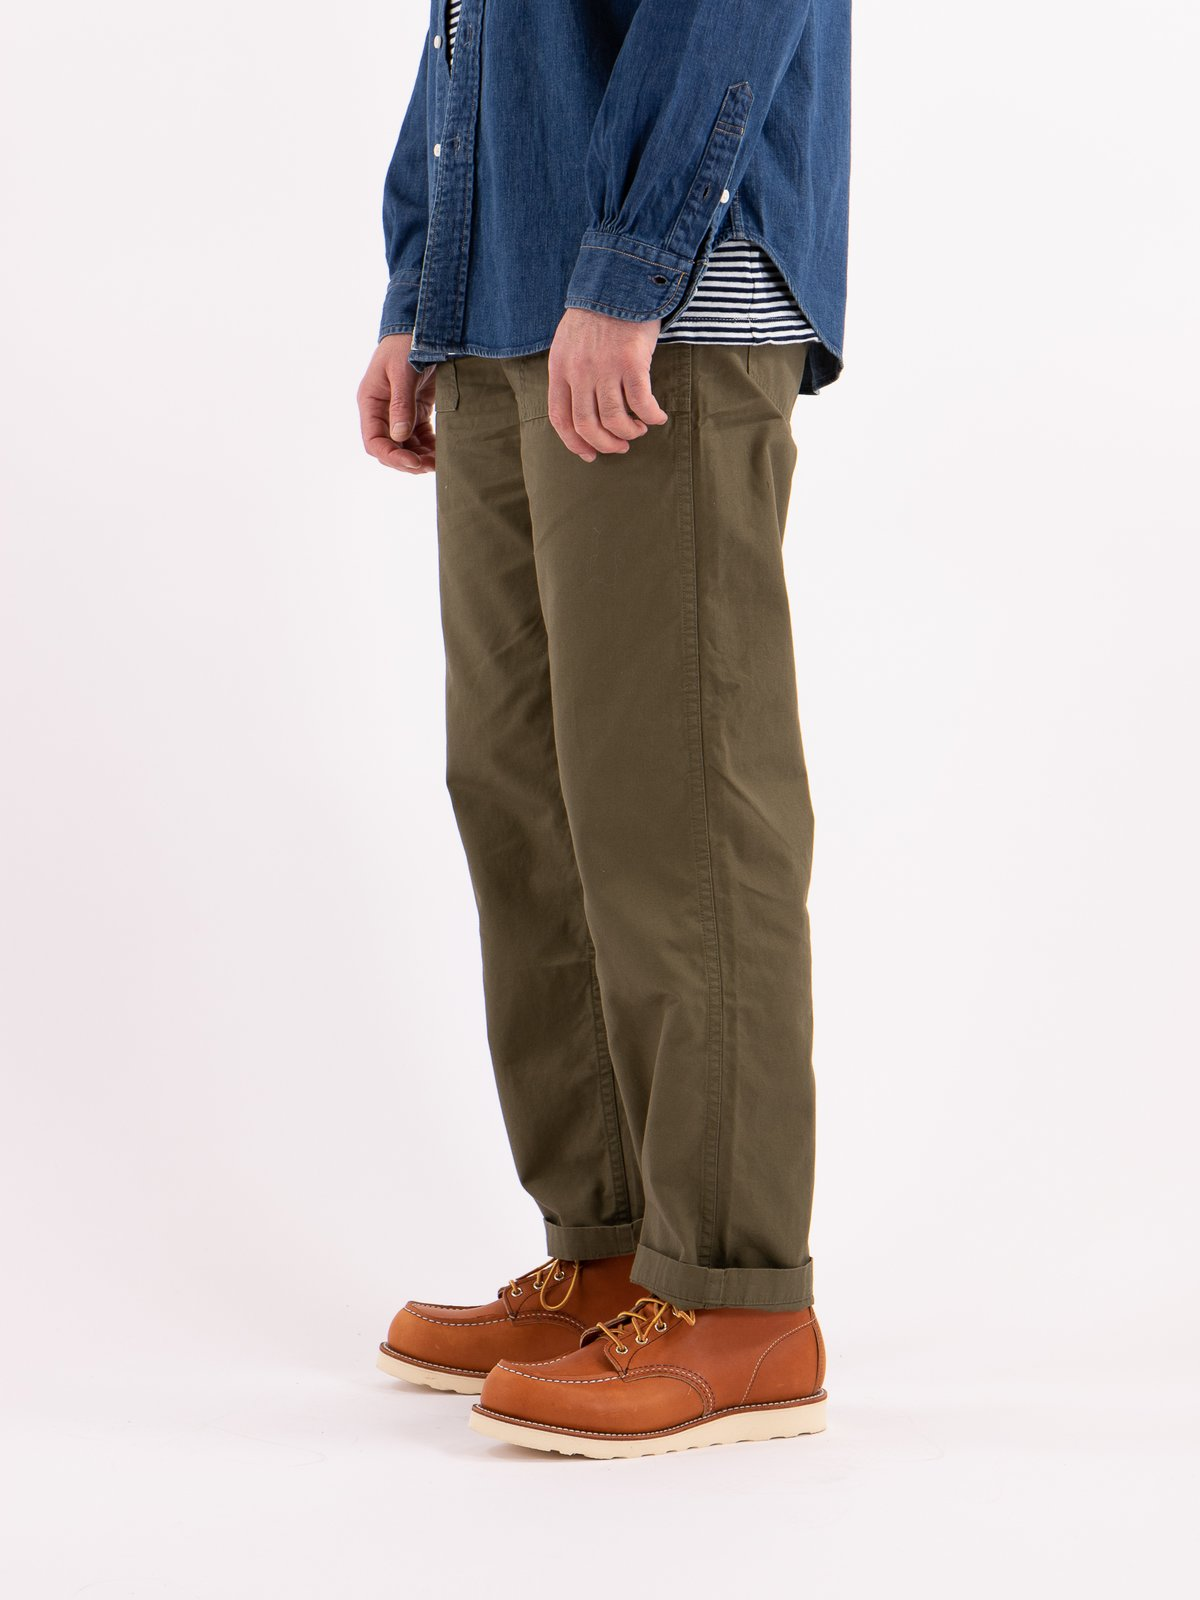 Army Green Ripstop Regular Fit US Army Fatigue Pant - Image 3